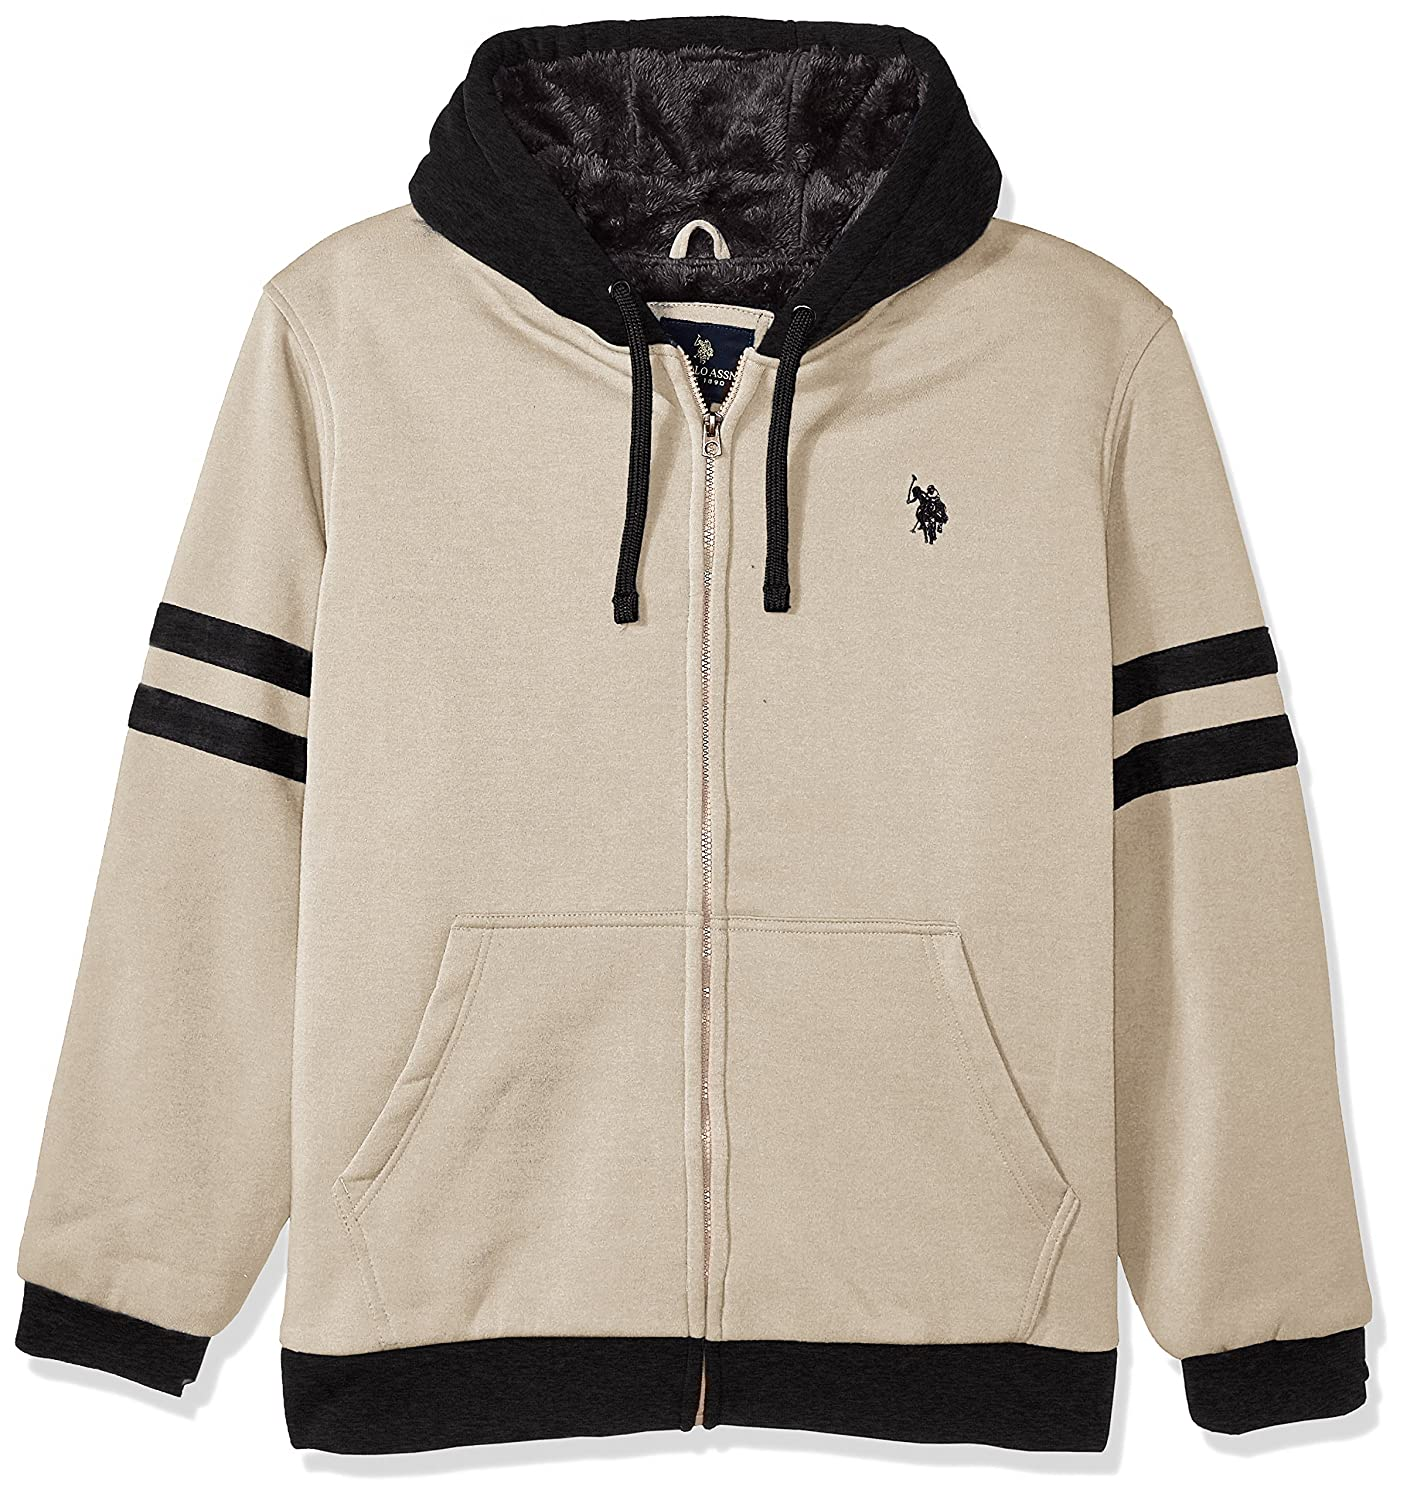 U.S. Polo Assn. OUTERWEAR メンズ B07369585Z Medium|Oatmeal 5523 Oatmeal 5523 Medium